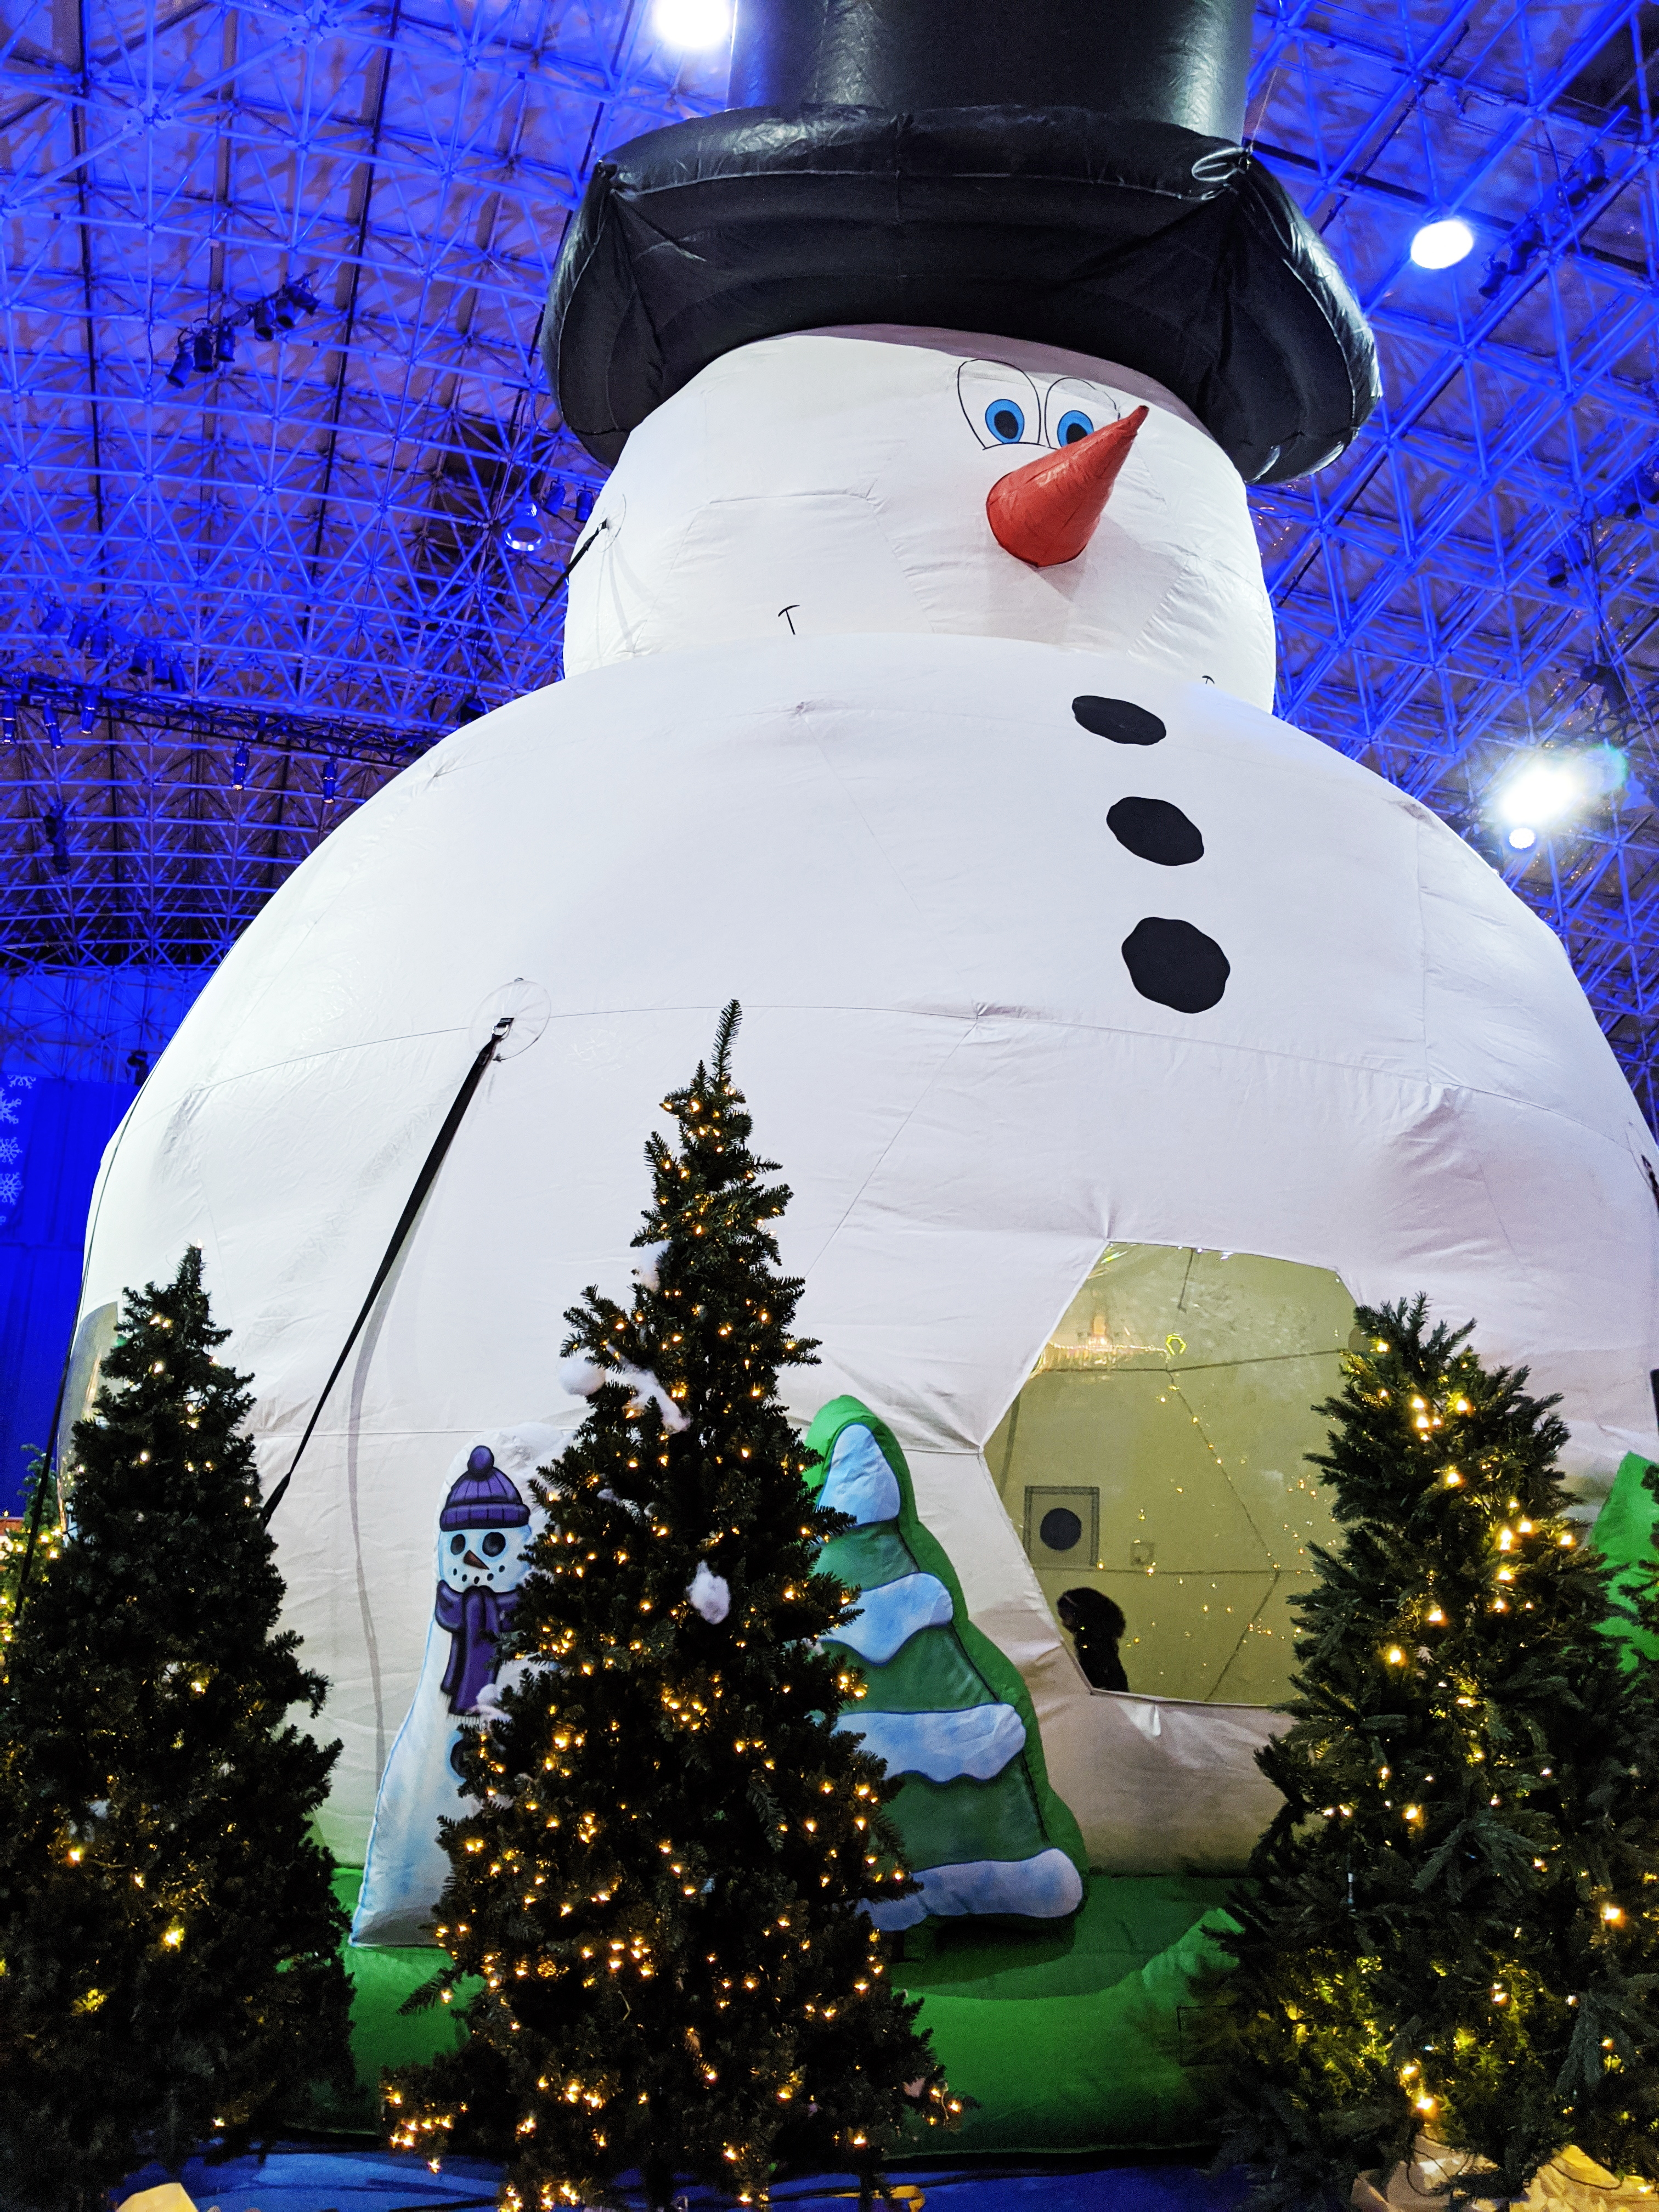 Winter Wonderfest Navy Pier - Chicago Holiday Events: Navy Pier Winter Wonderfest is one of the best family-friendly Chicago activities during the holidays! Find out the best times to go to Winter Wonderfest and sneak a peek inside the magic! #WWF19 #chicago #navypier